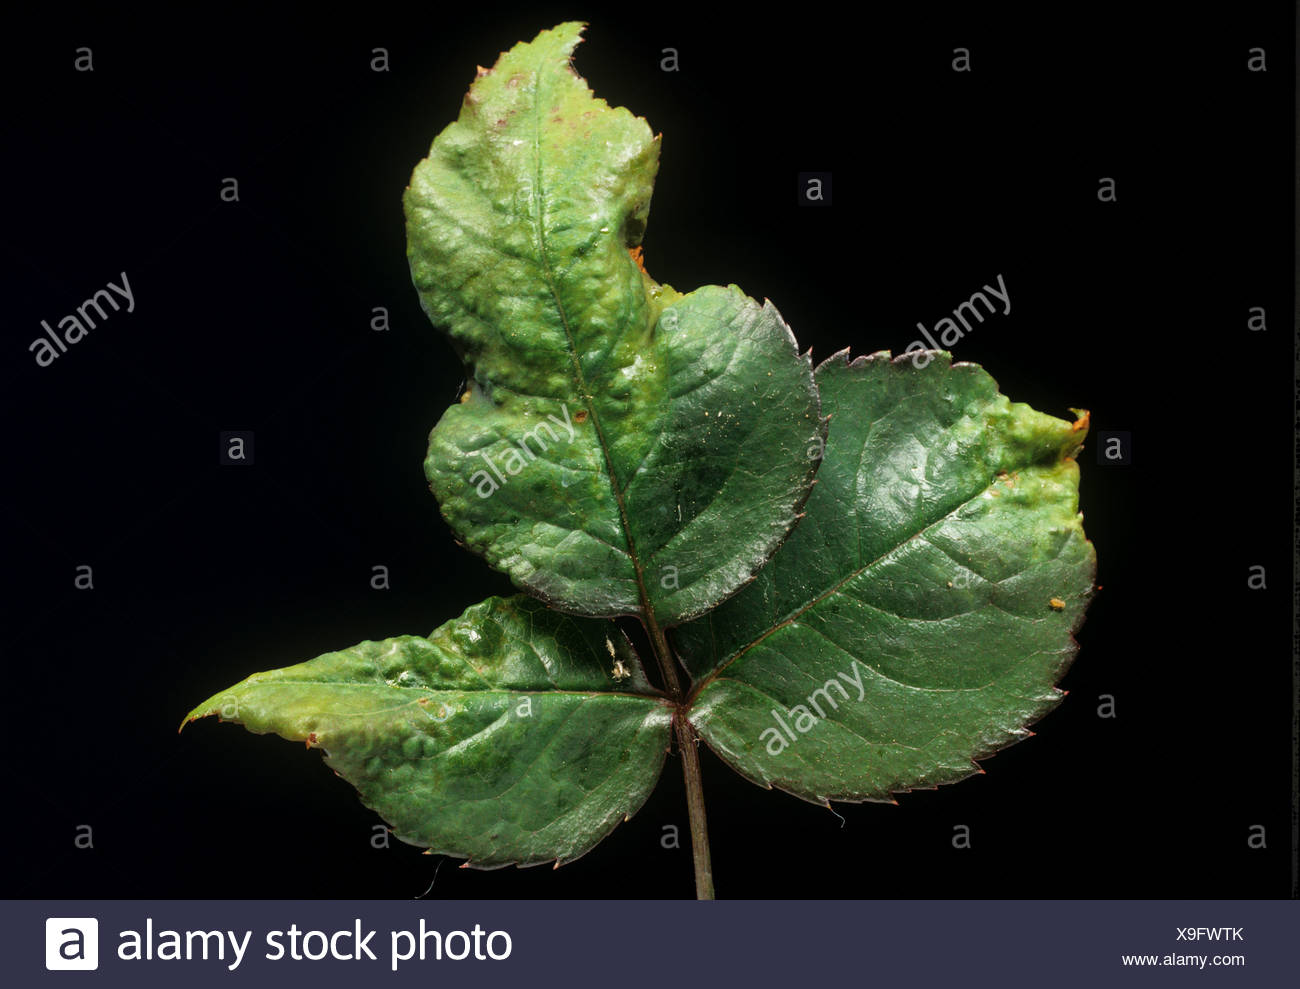 Two spotted spider mite Tetranychus urticae damage to rose leaves - Stock Image